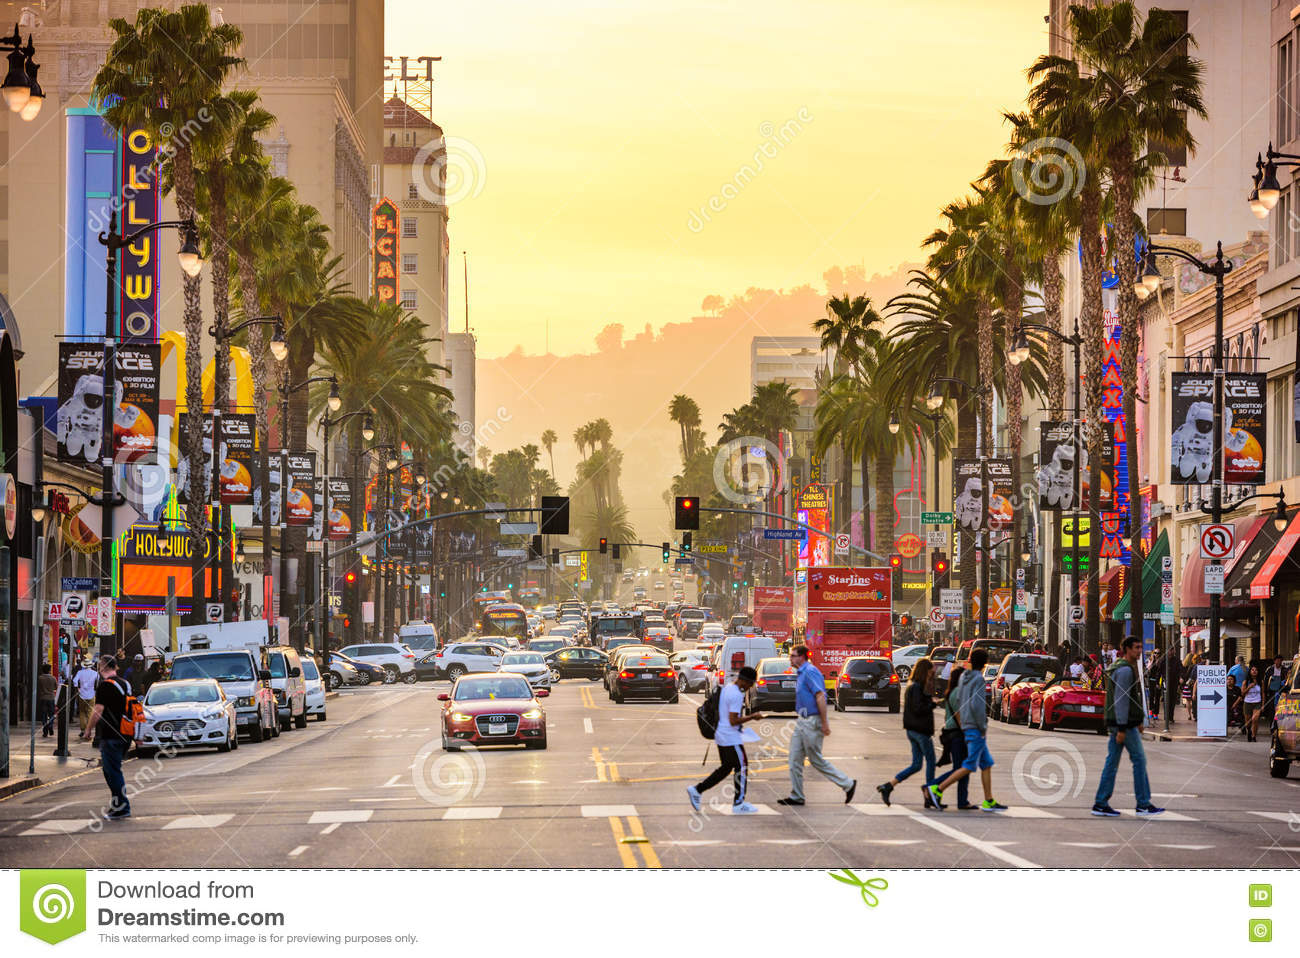 Calles de Hollywood California